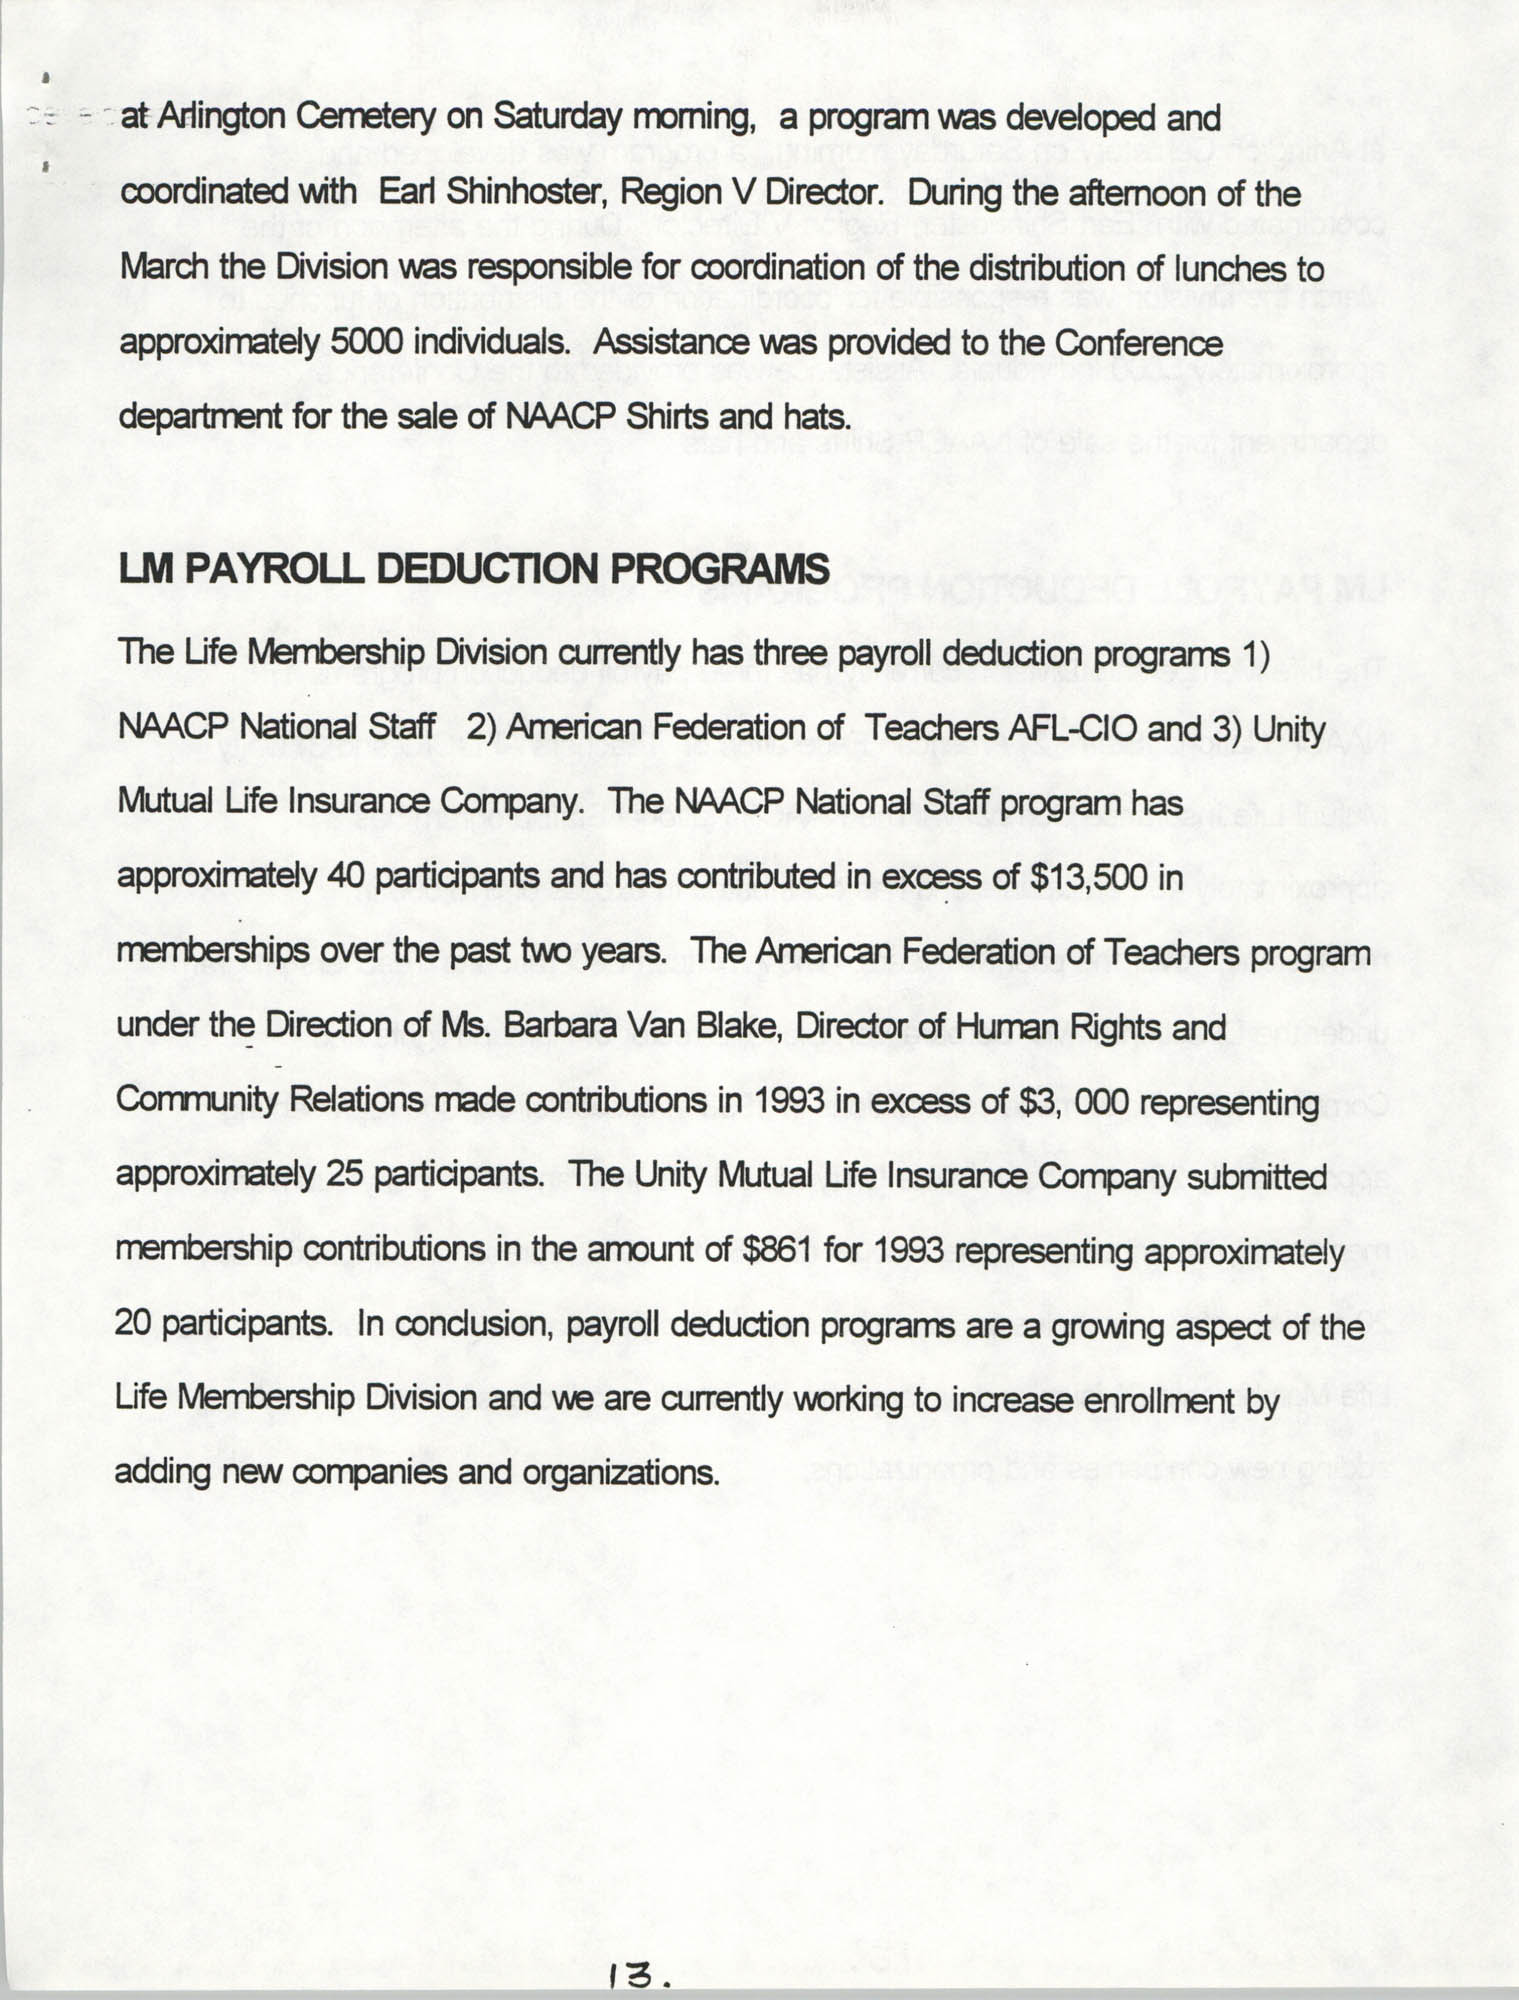 Life Membership Division, 1993 Annual Report, Page 13